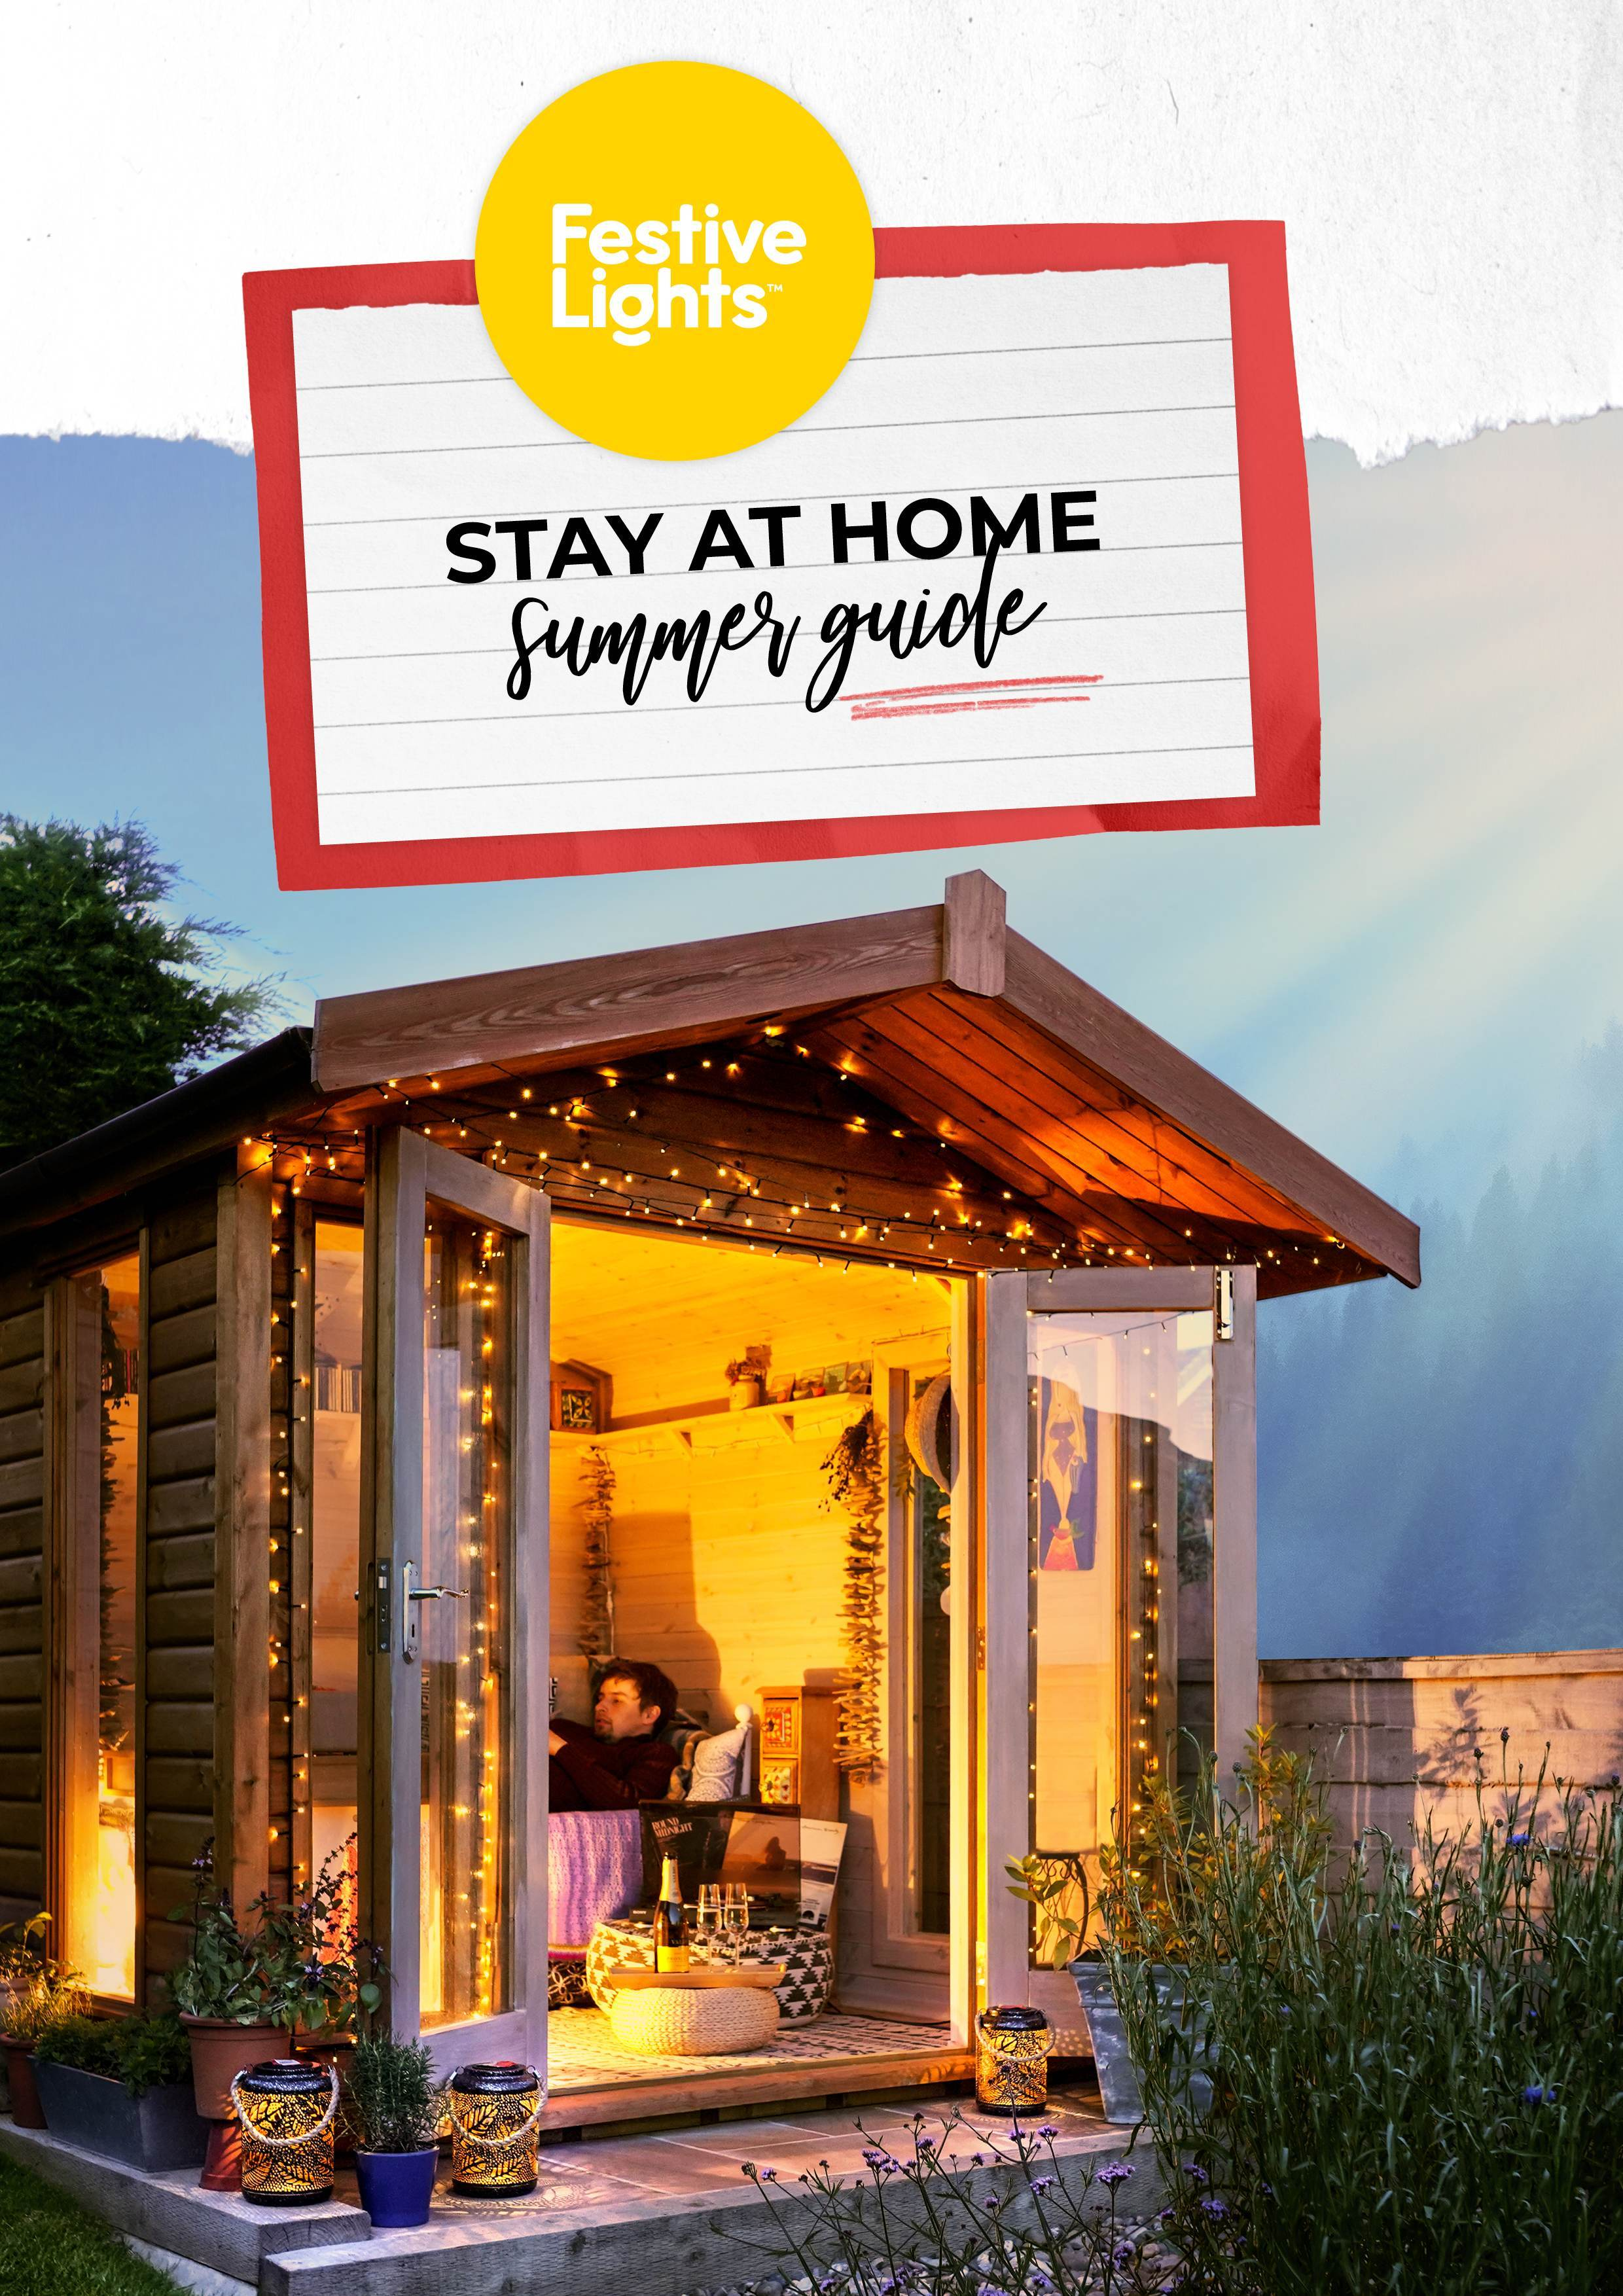 Festive Lights Stay at Home Summer Guide 2020